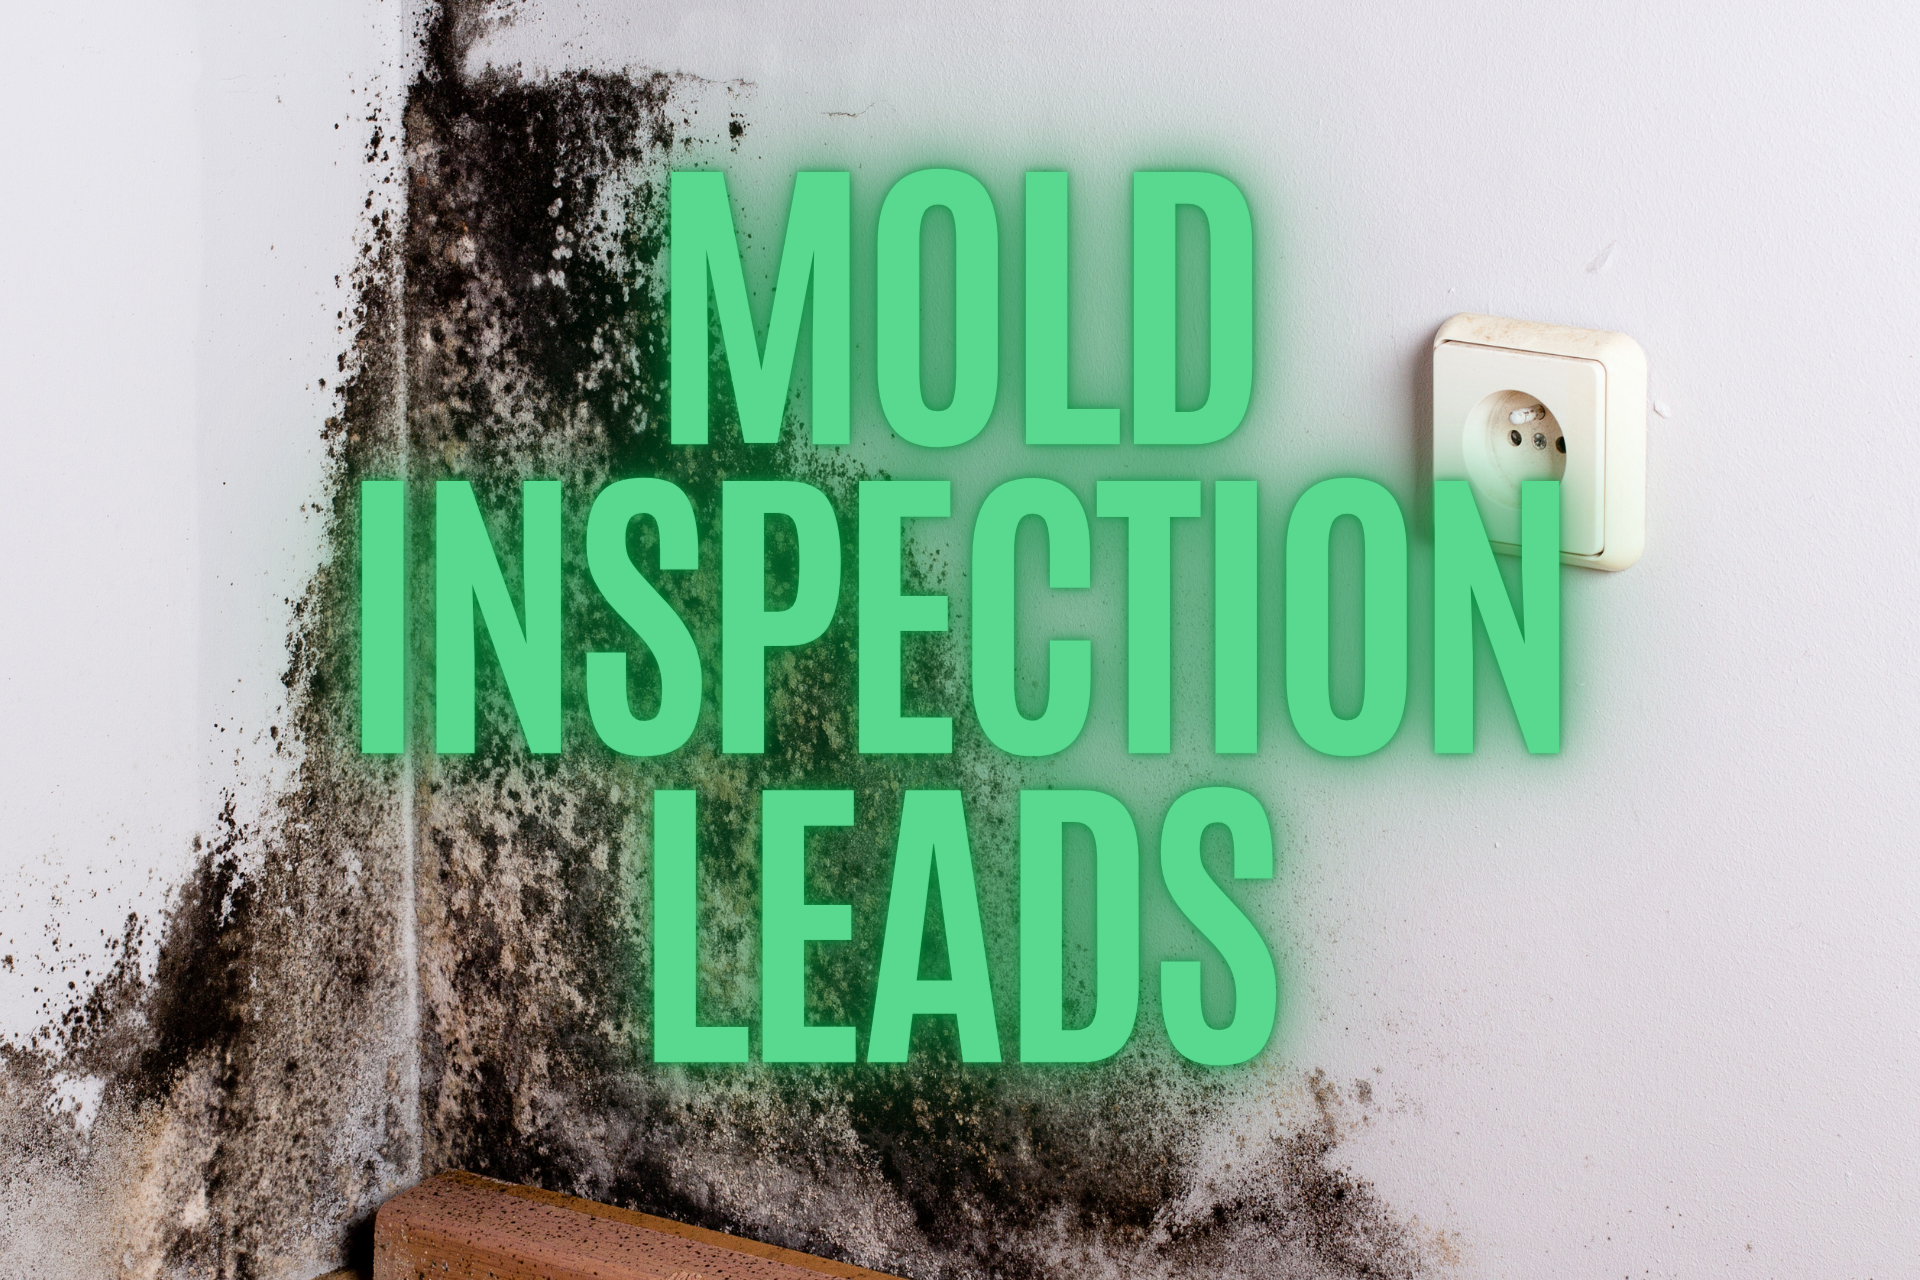 Mold inspection leads